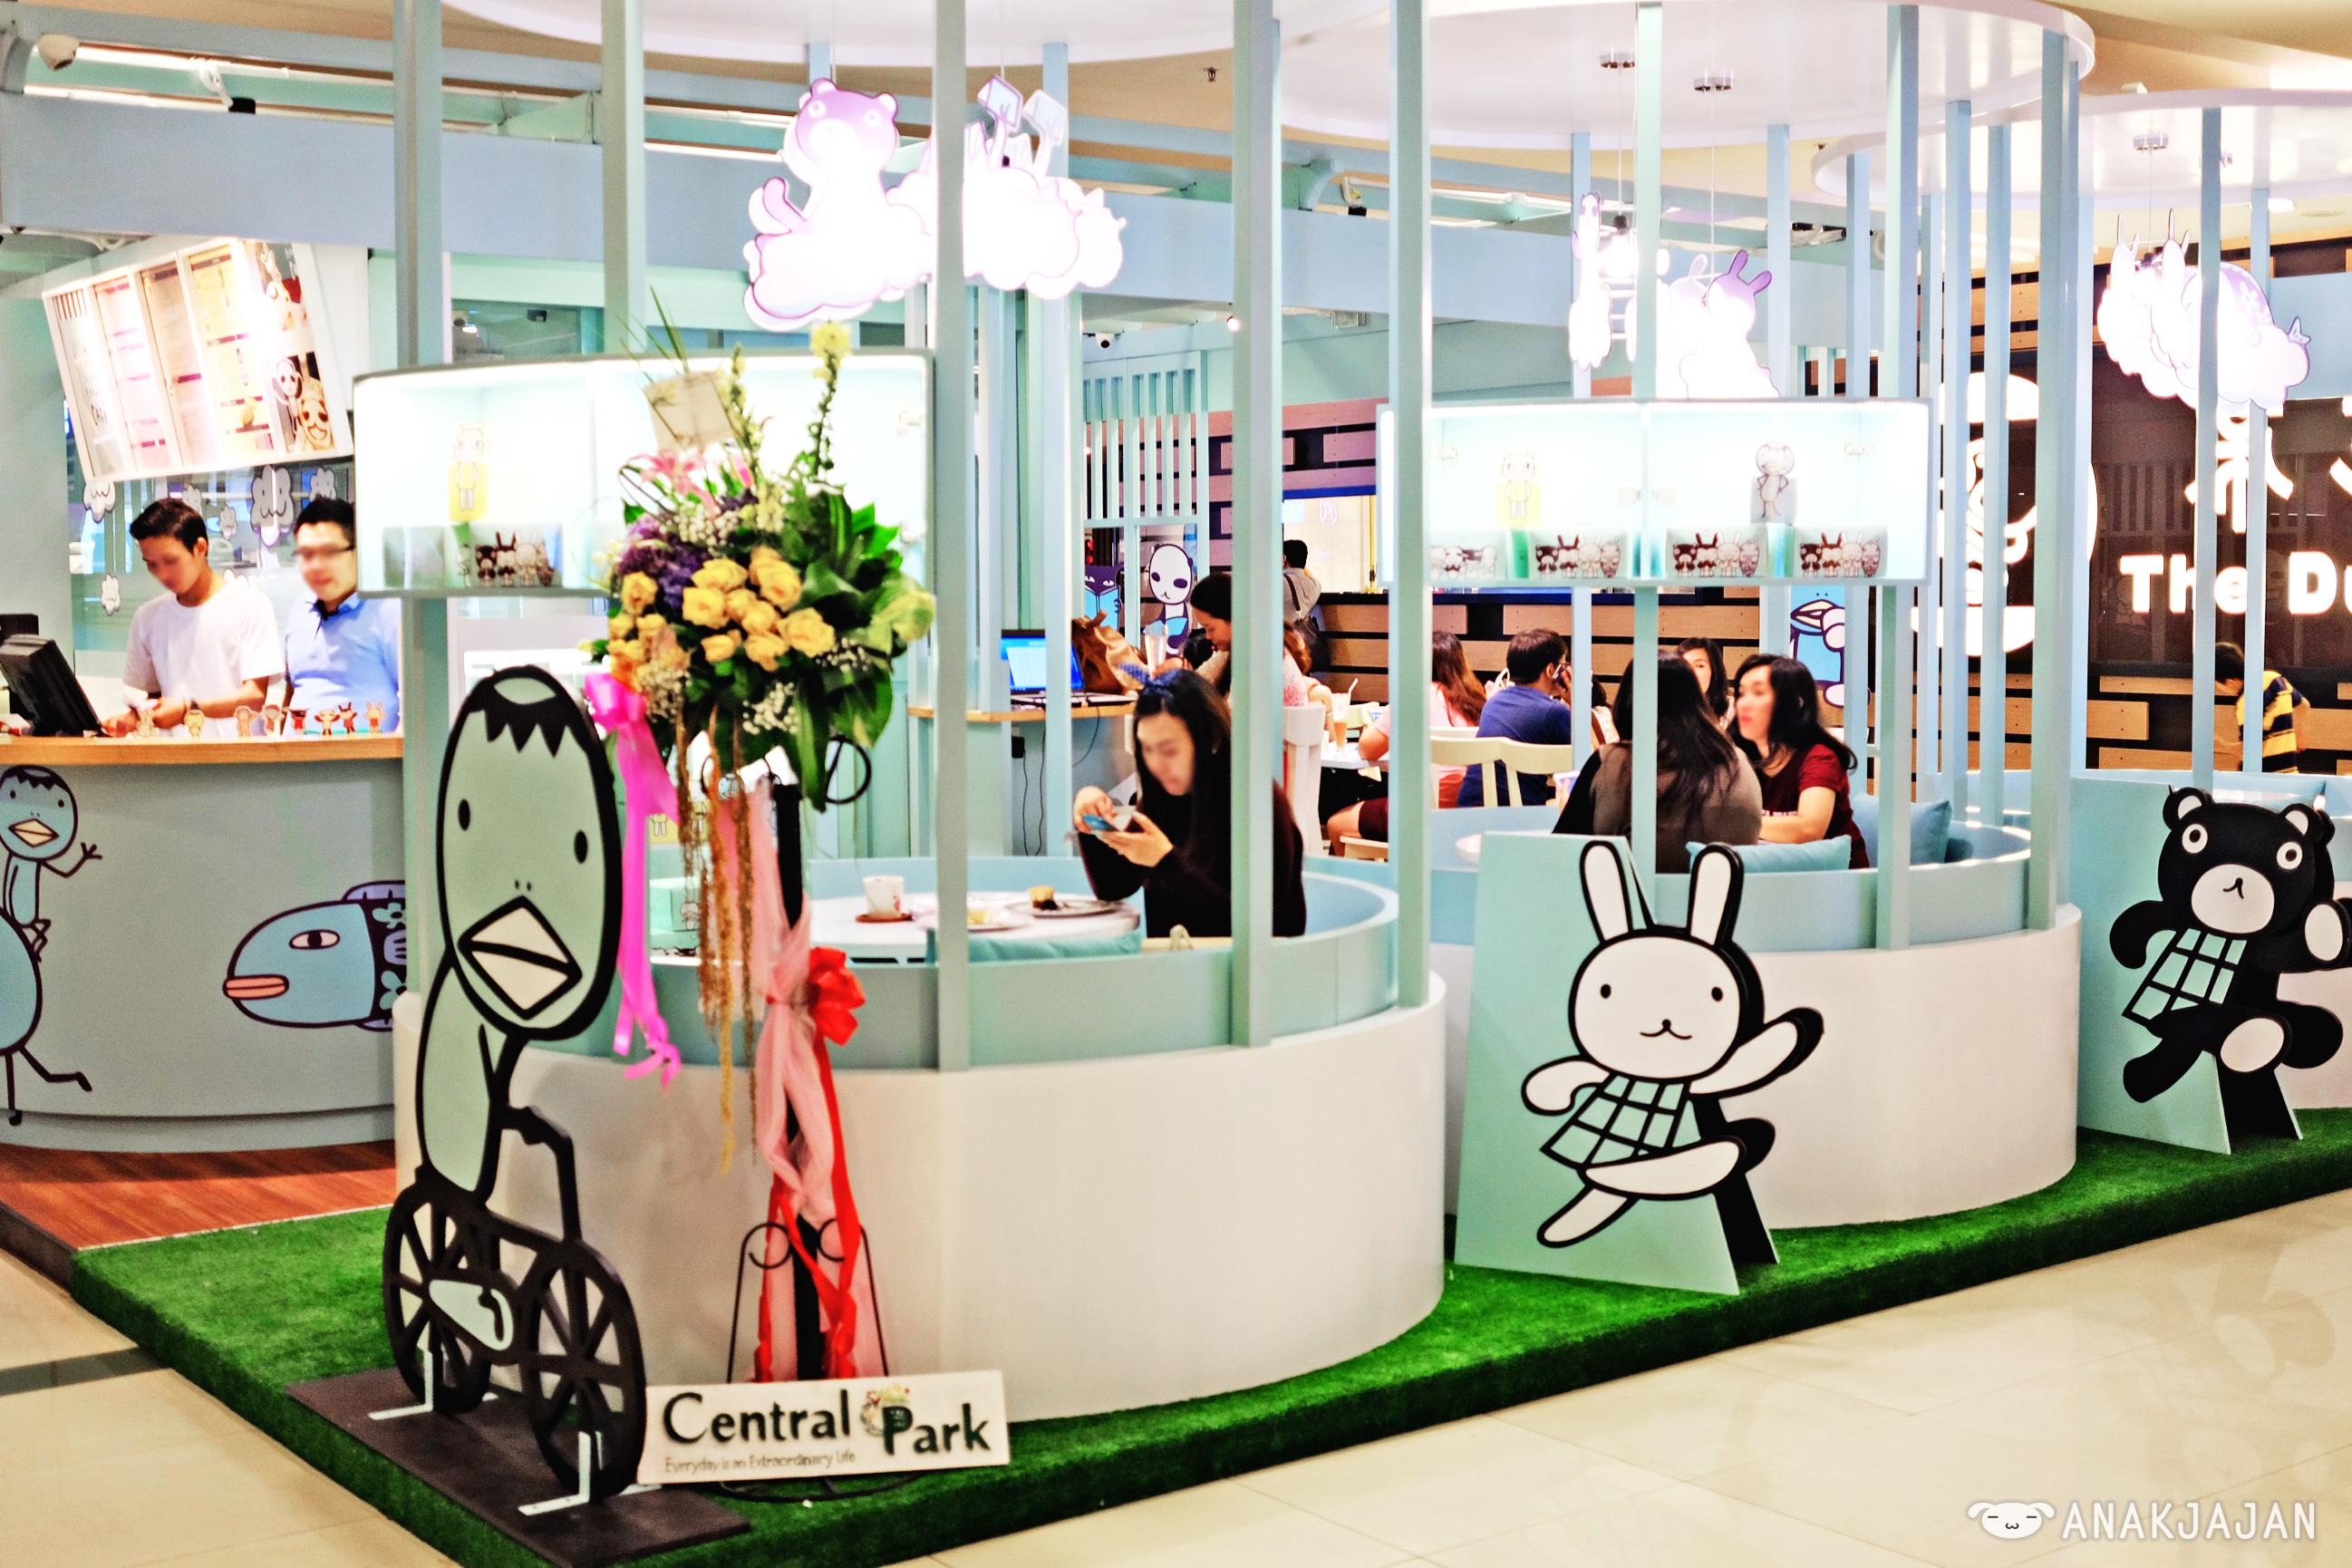 The cafe is located on the 1st floor of central park mall near tous le jours hongkong cafe and duck king the interior itself is simple yet fun with baby